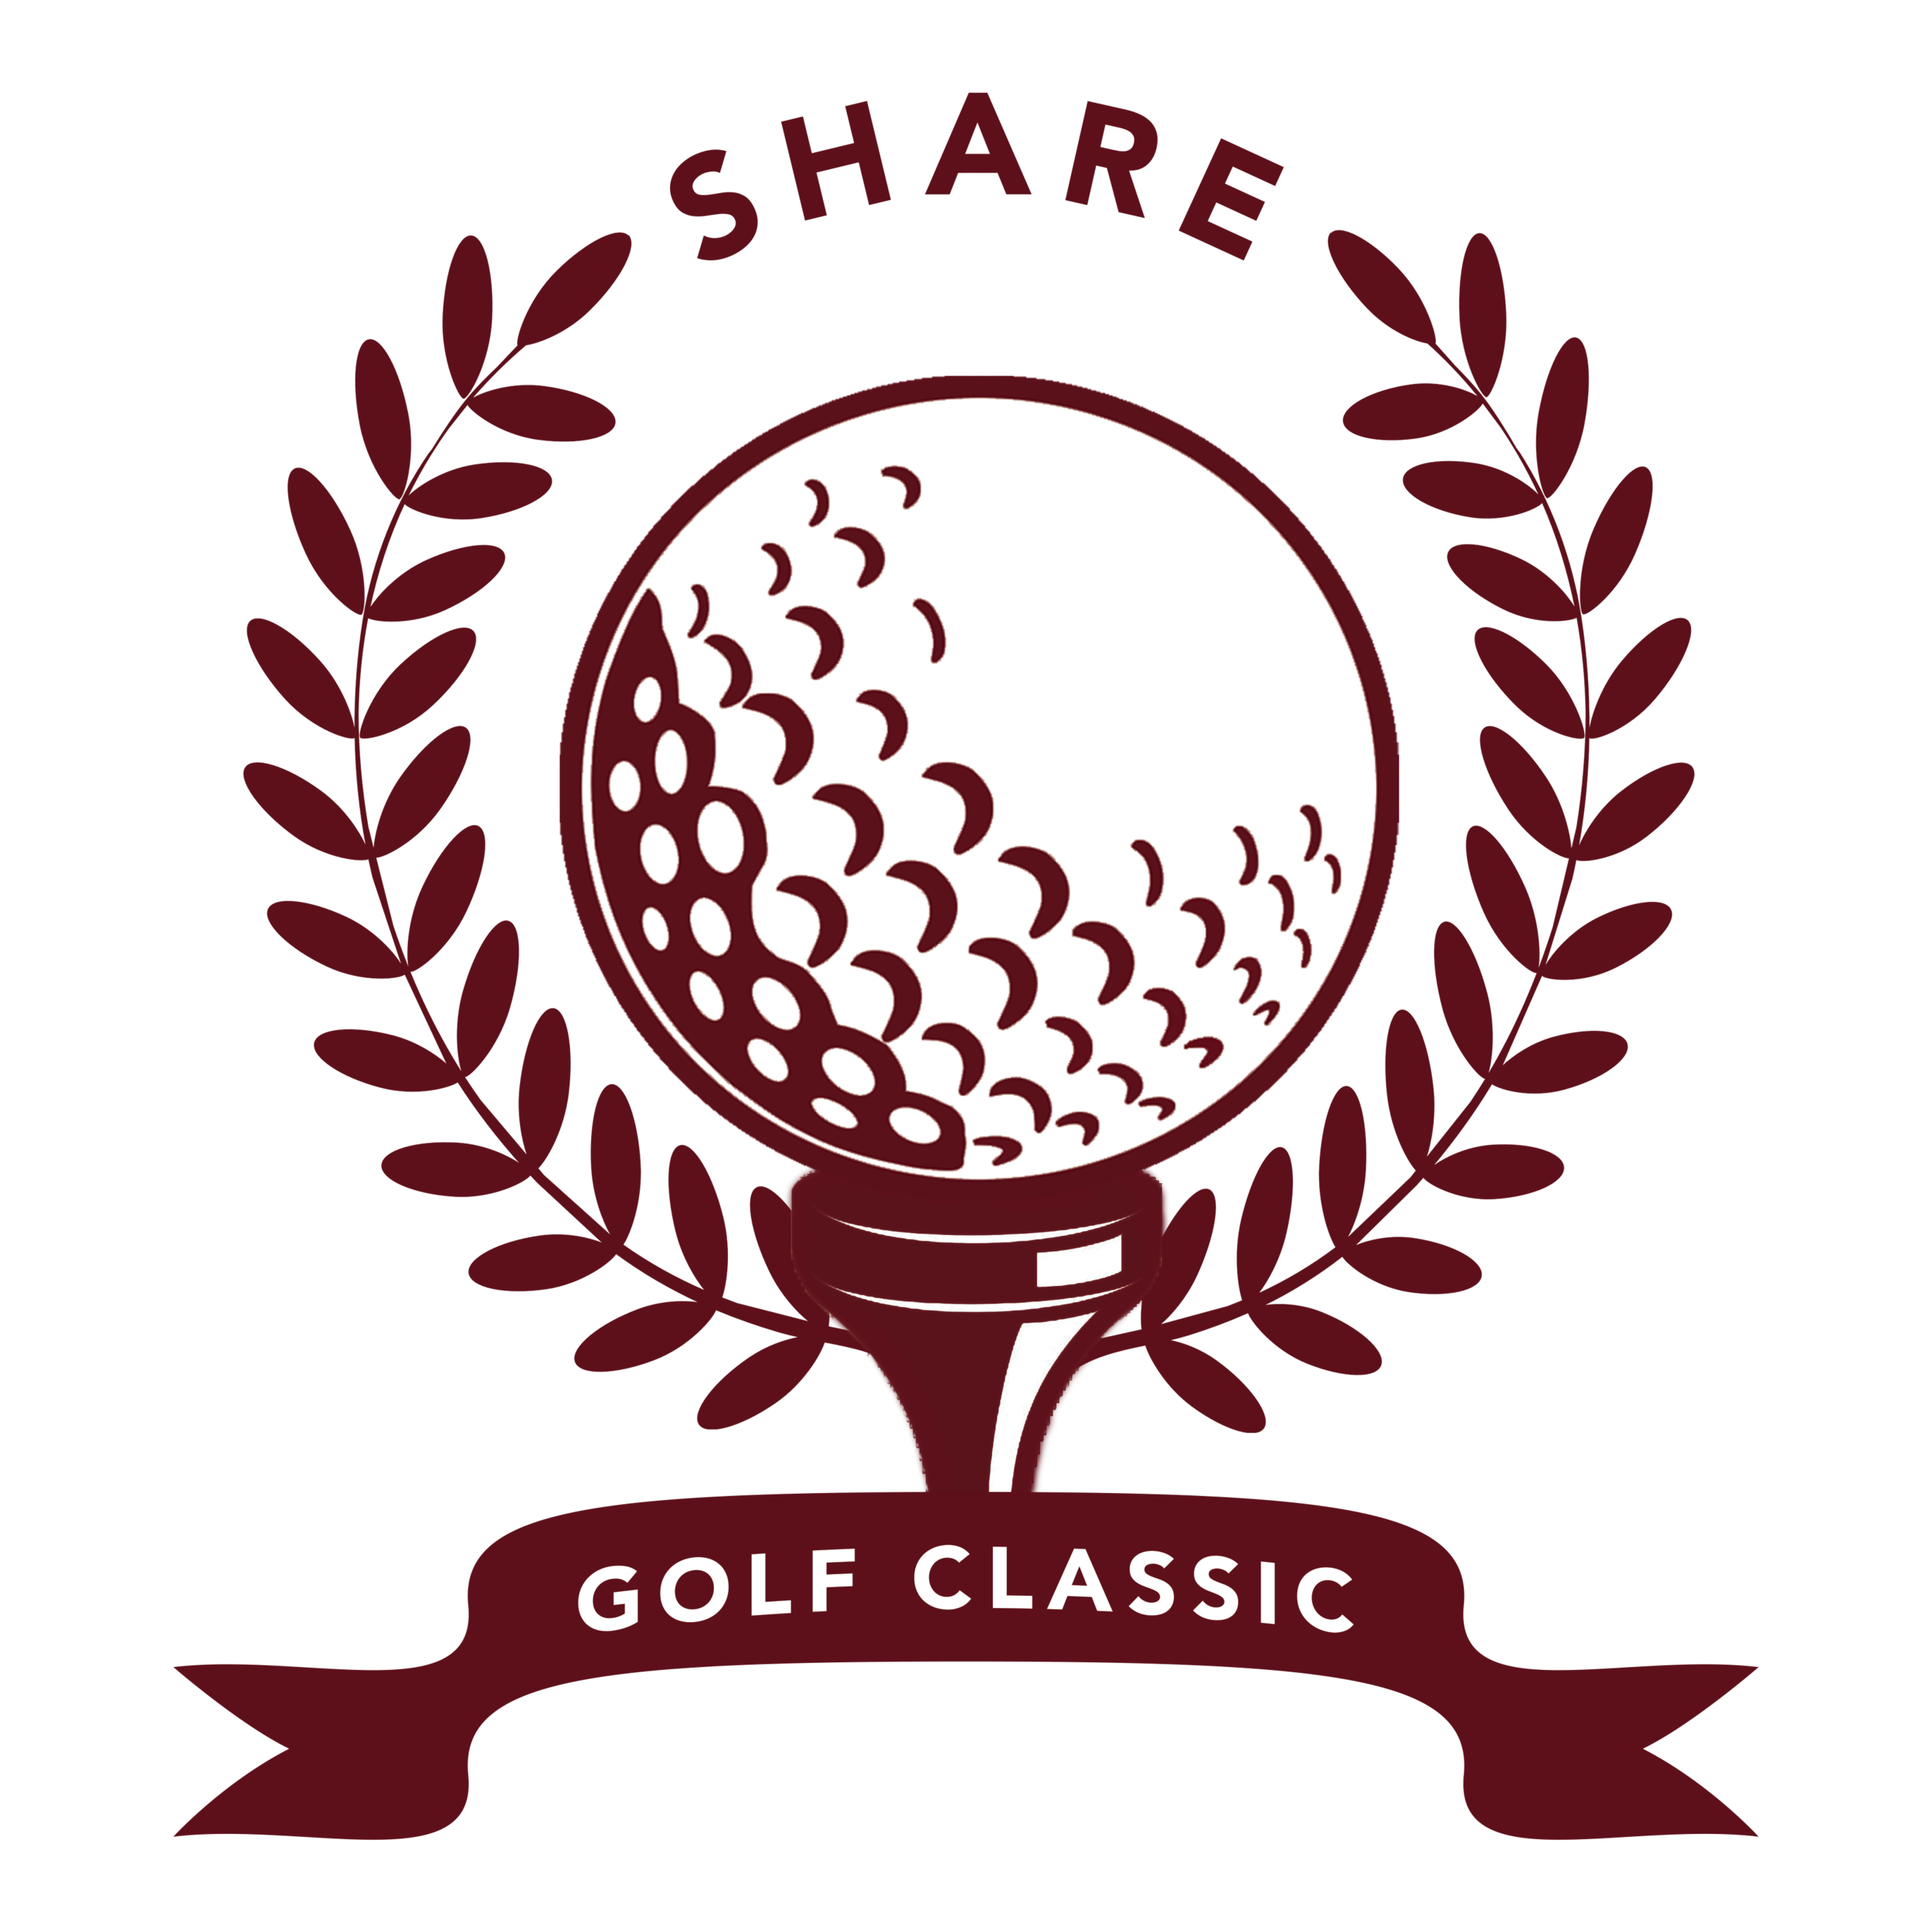 Golf Classic Logo (golf ball and tee).png